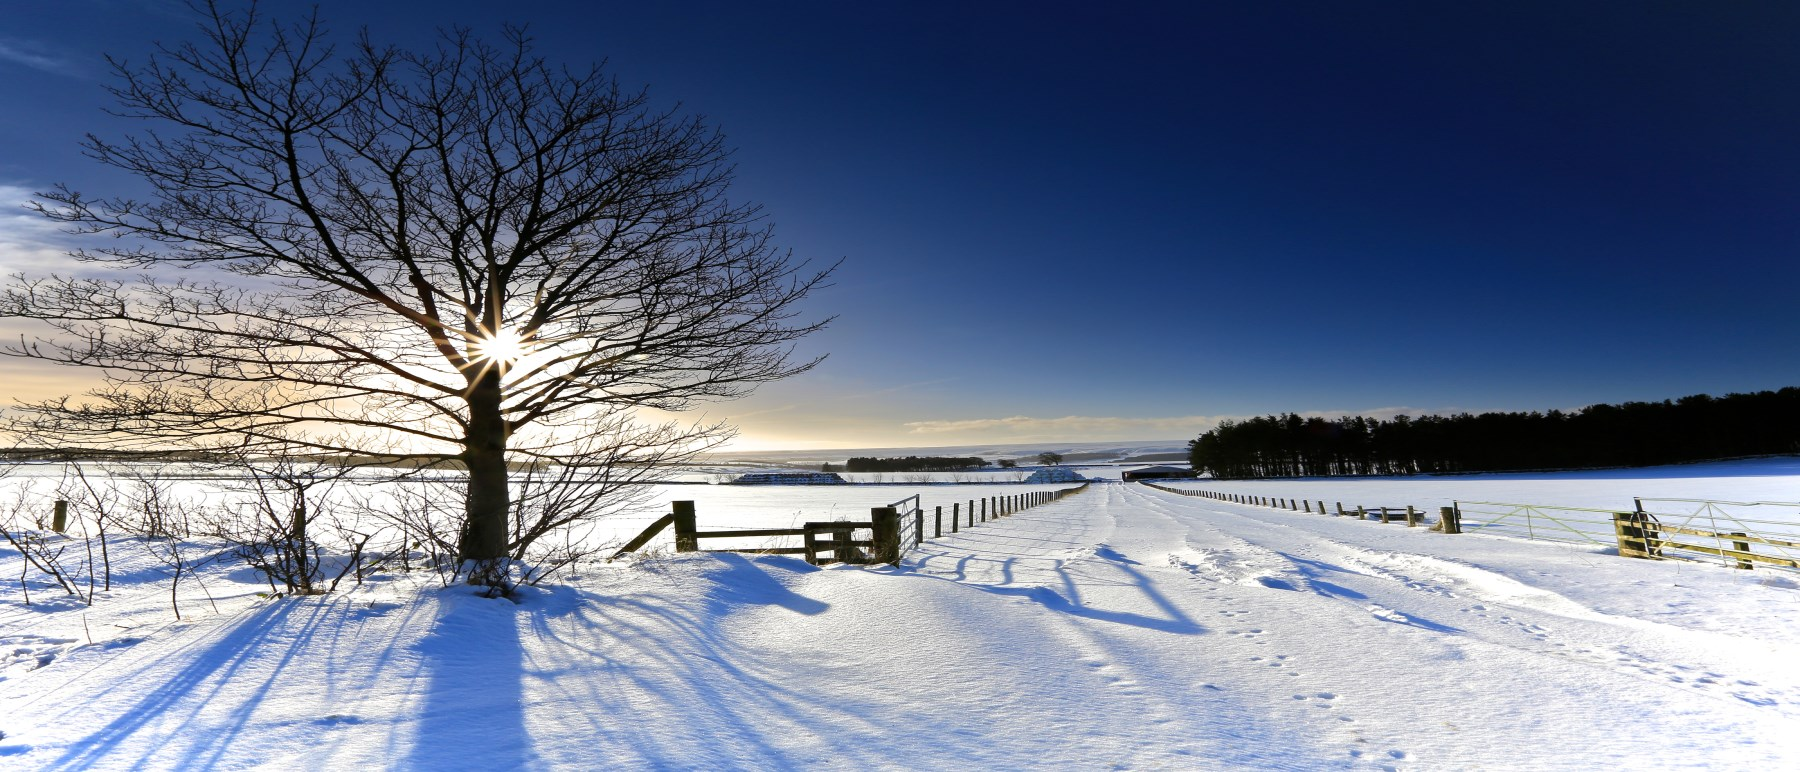 Image of winter scene with sun shining